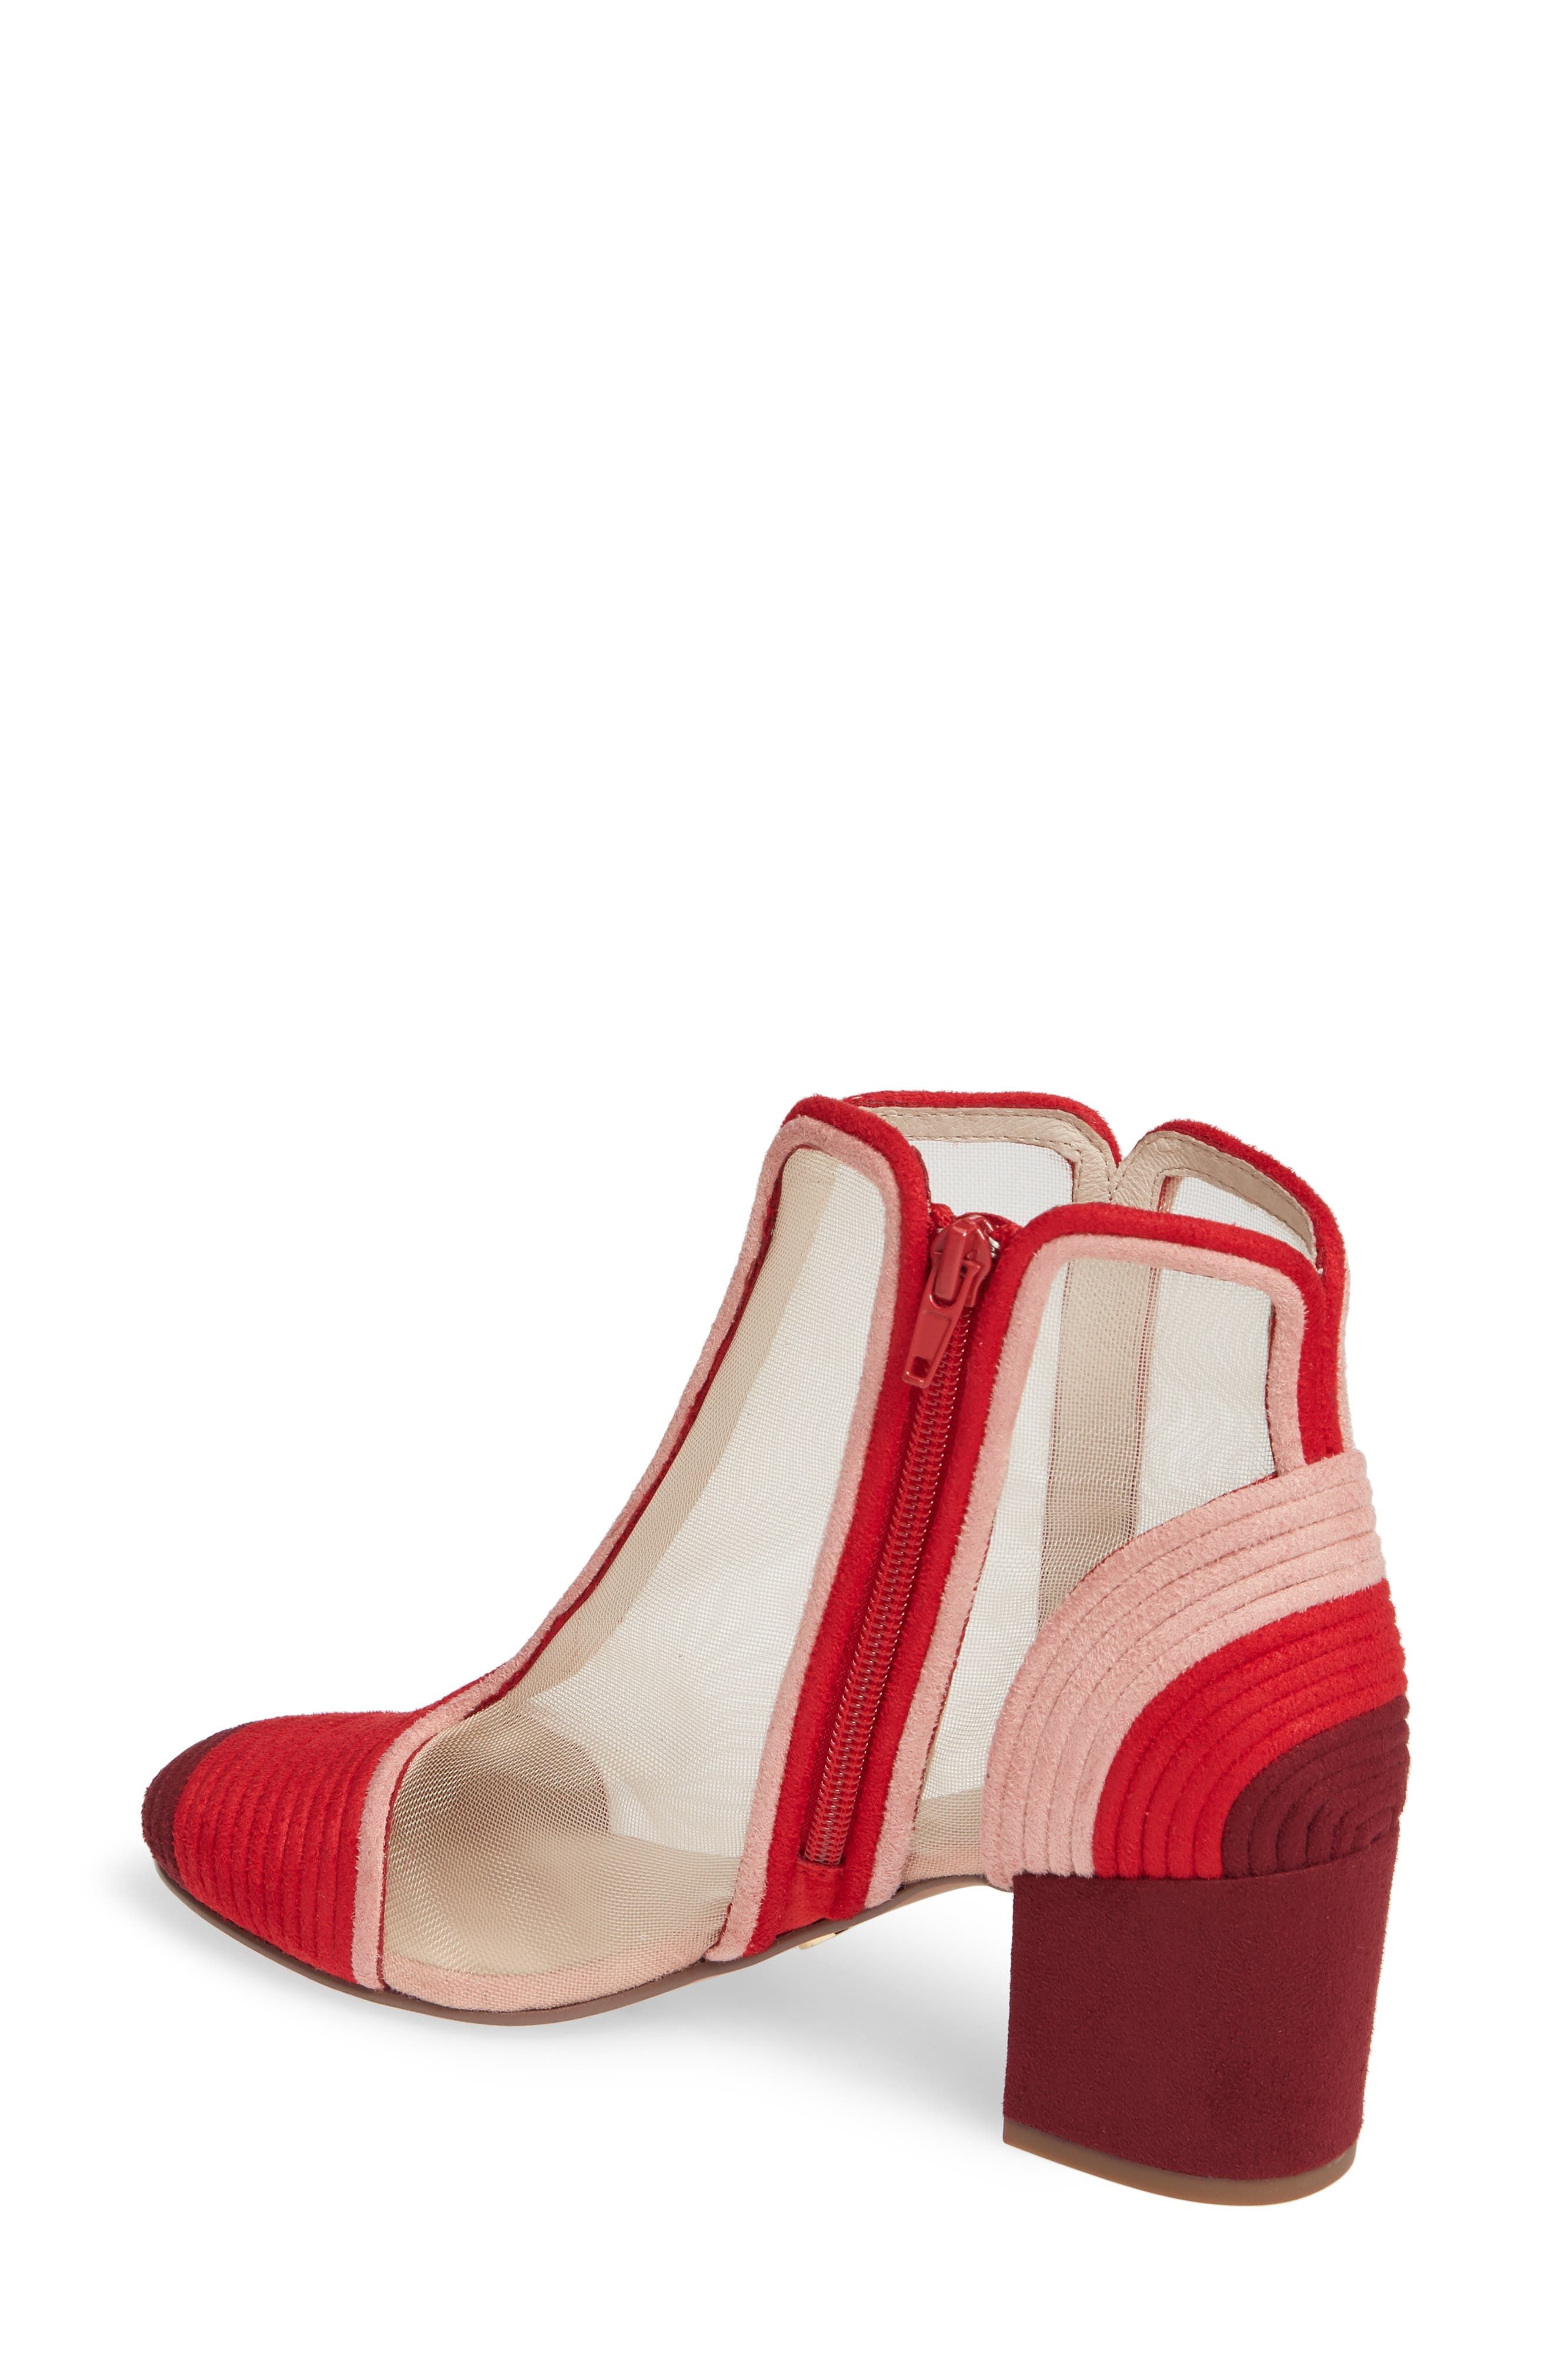 CECELIA NEW YORK,                             Neely Bootie,                             Alternate thumbnail 2, color,                             PINOT SUEDE